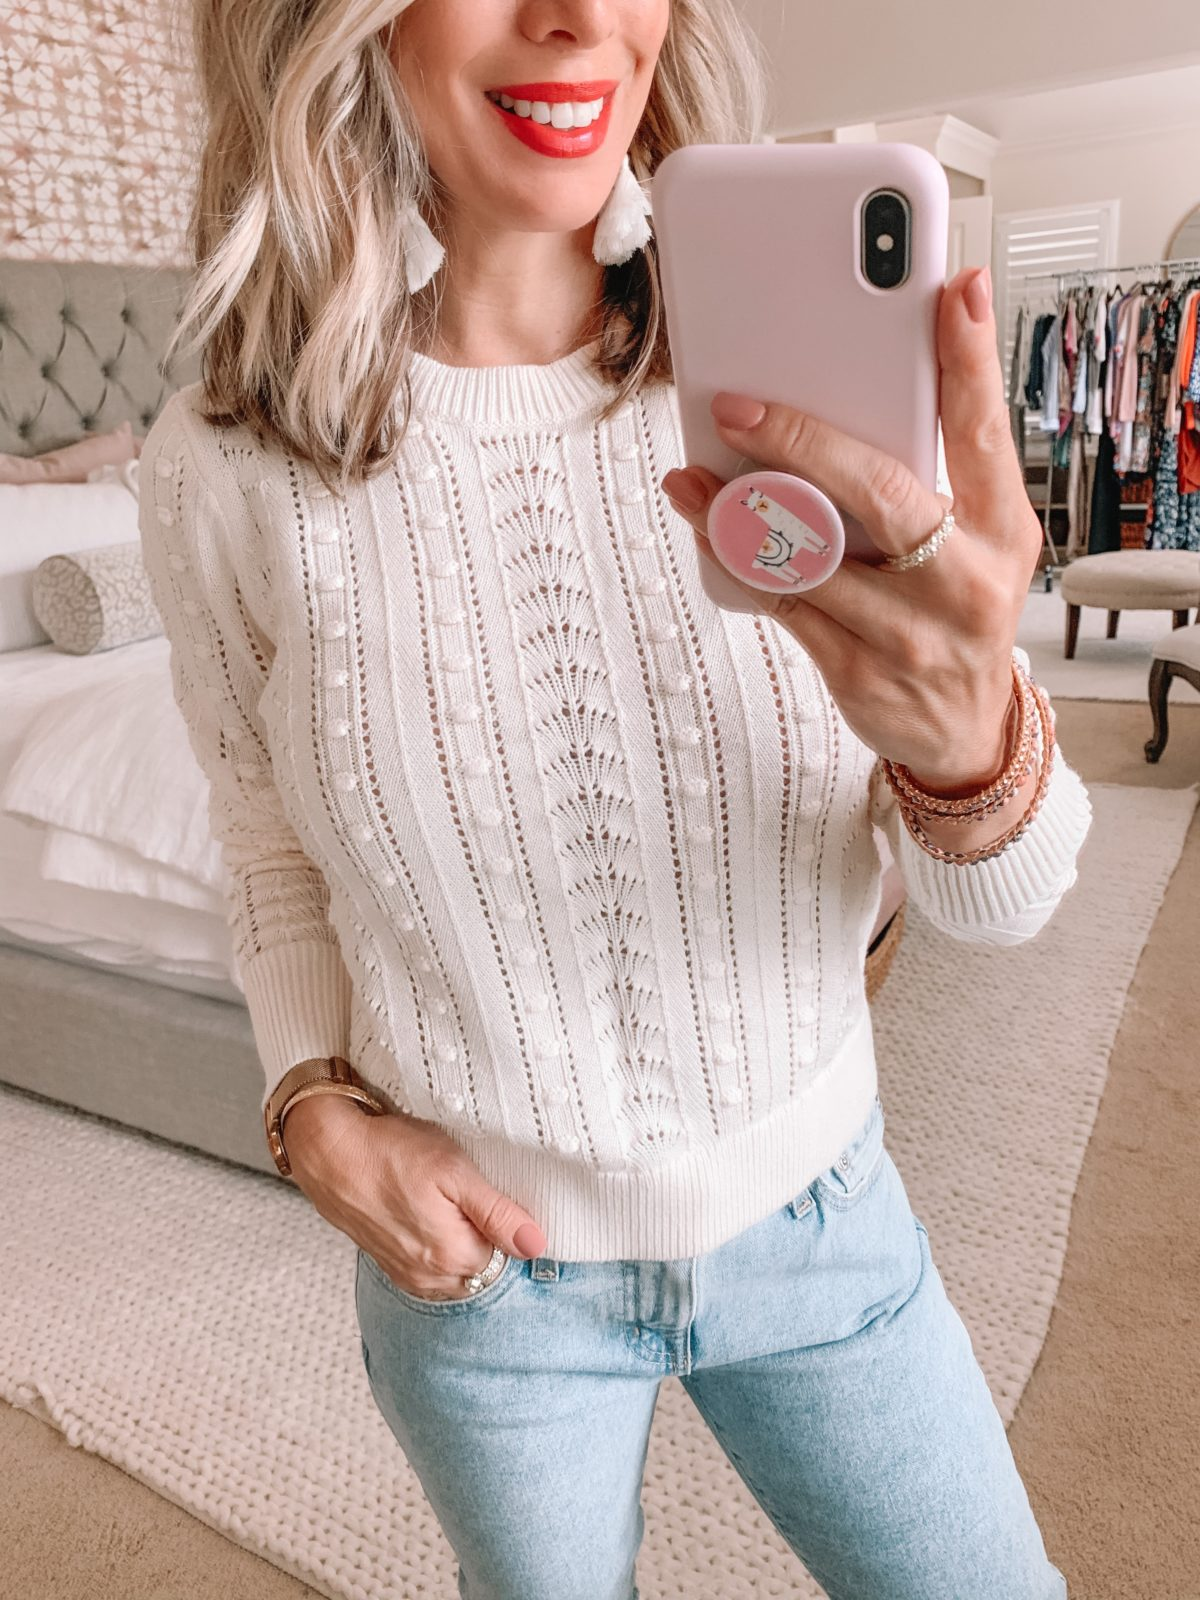 Dressing Room Nordstrom & LOFT, Cropped Sweater, Ex-Boyfriend Jeans